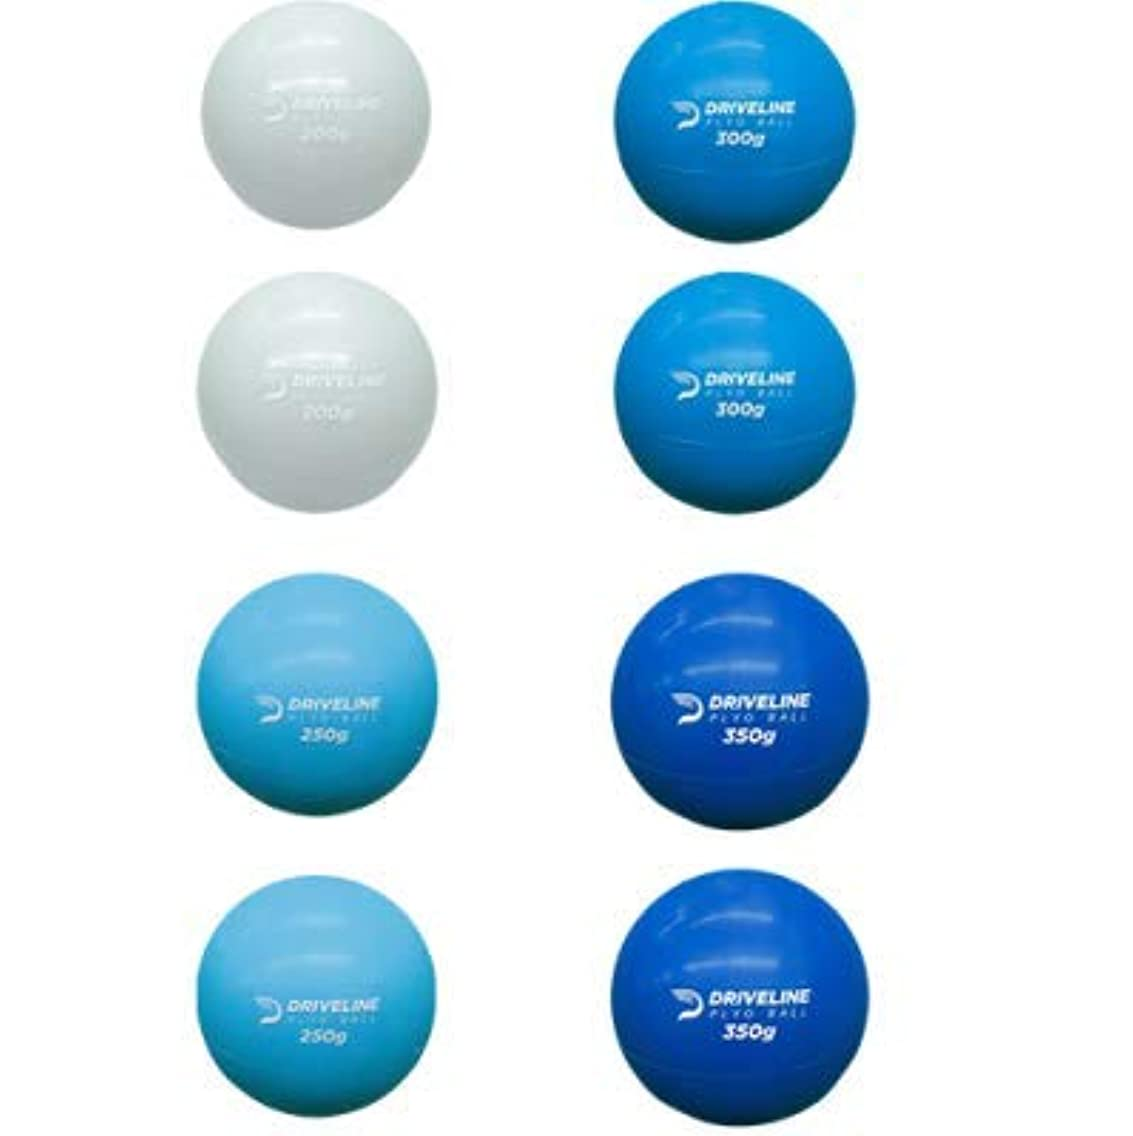 Driveline Hitting PlyoCare Balls - Weighted Balls for Baseball Hitting Training